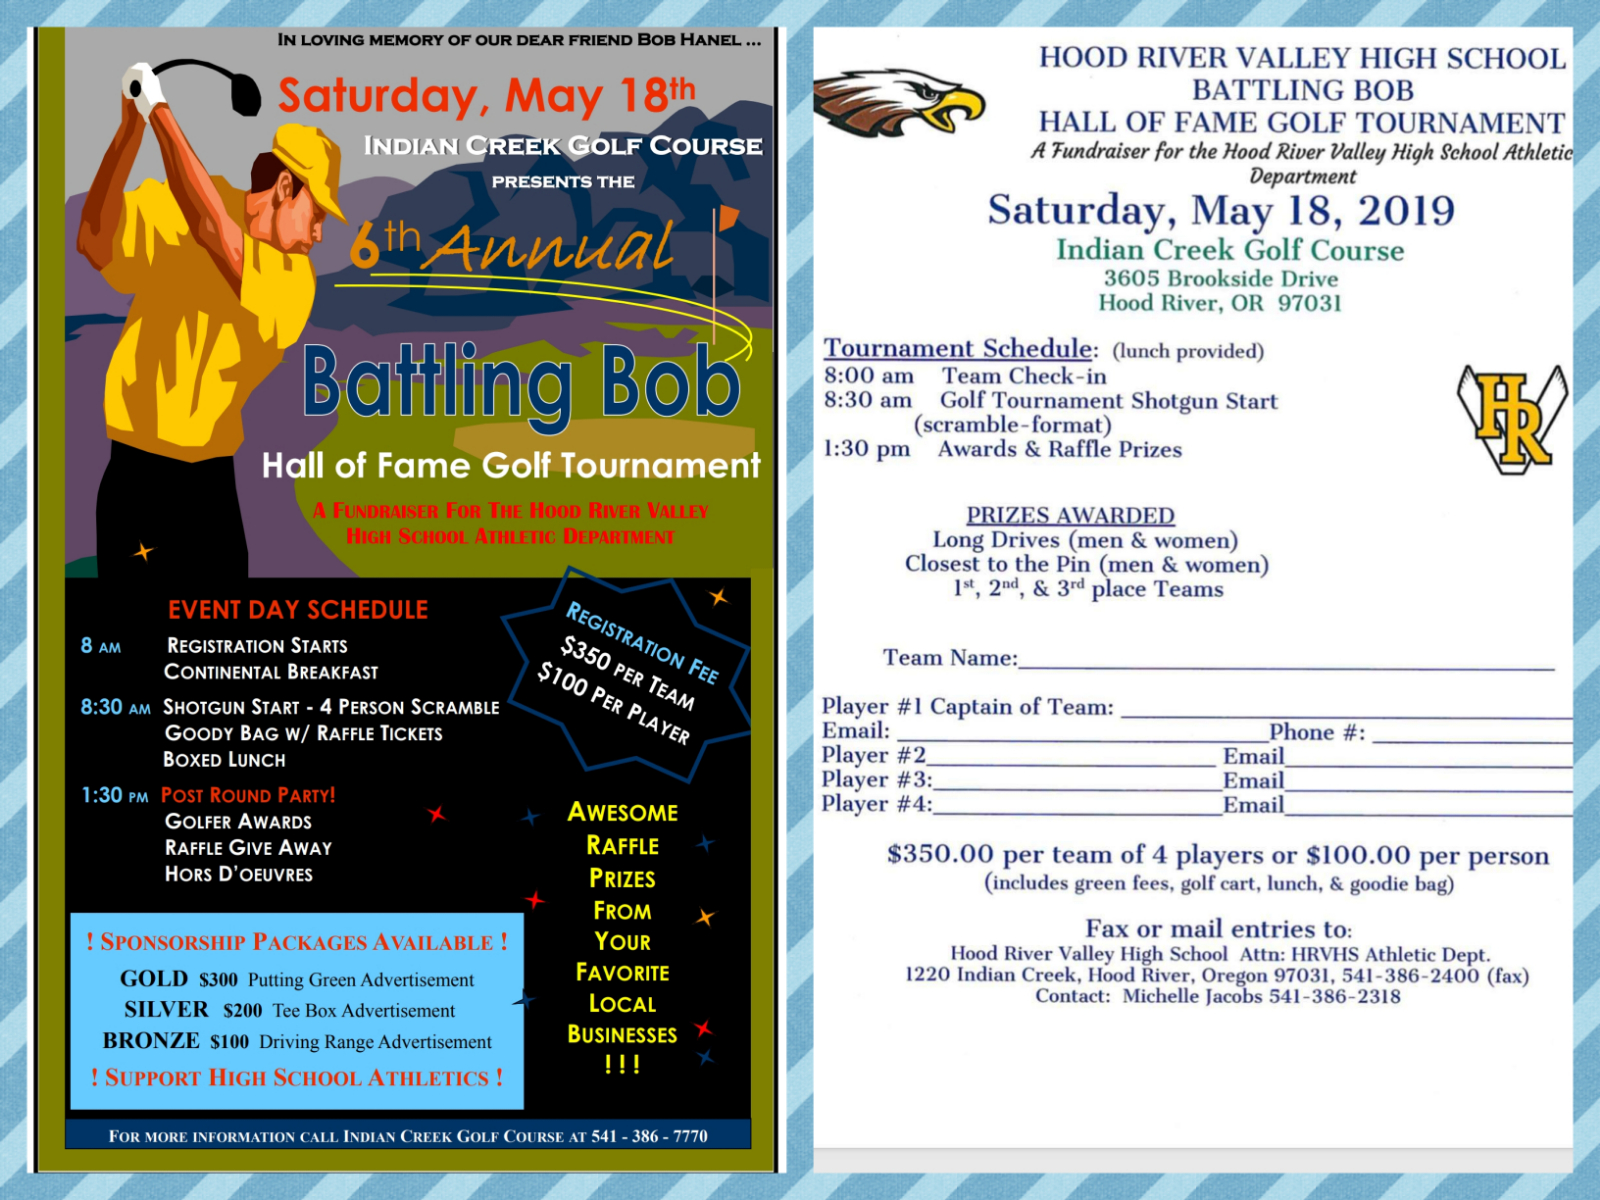 HRVHS Hall of Fame Golf Tournament  – Saturday,  May 18!